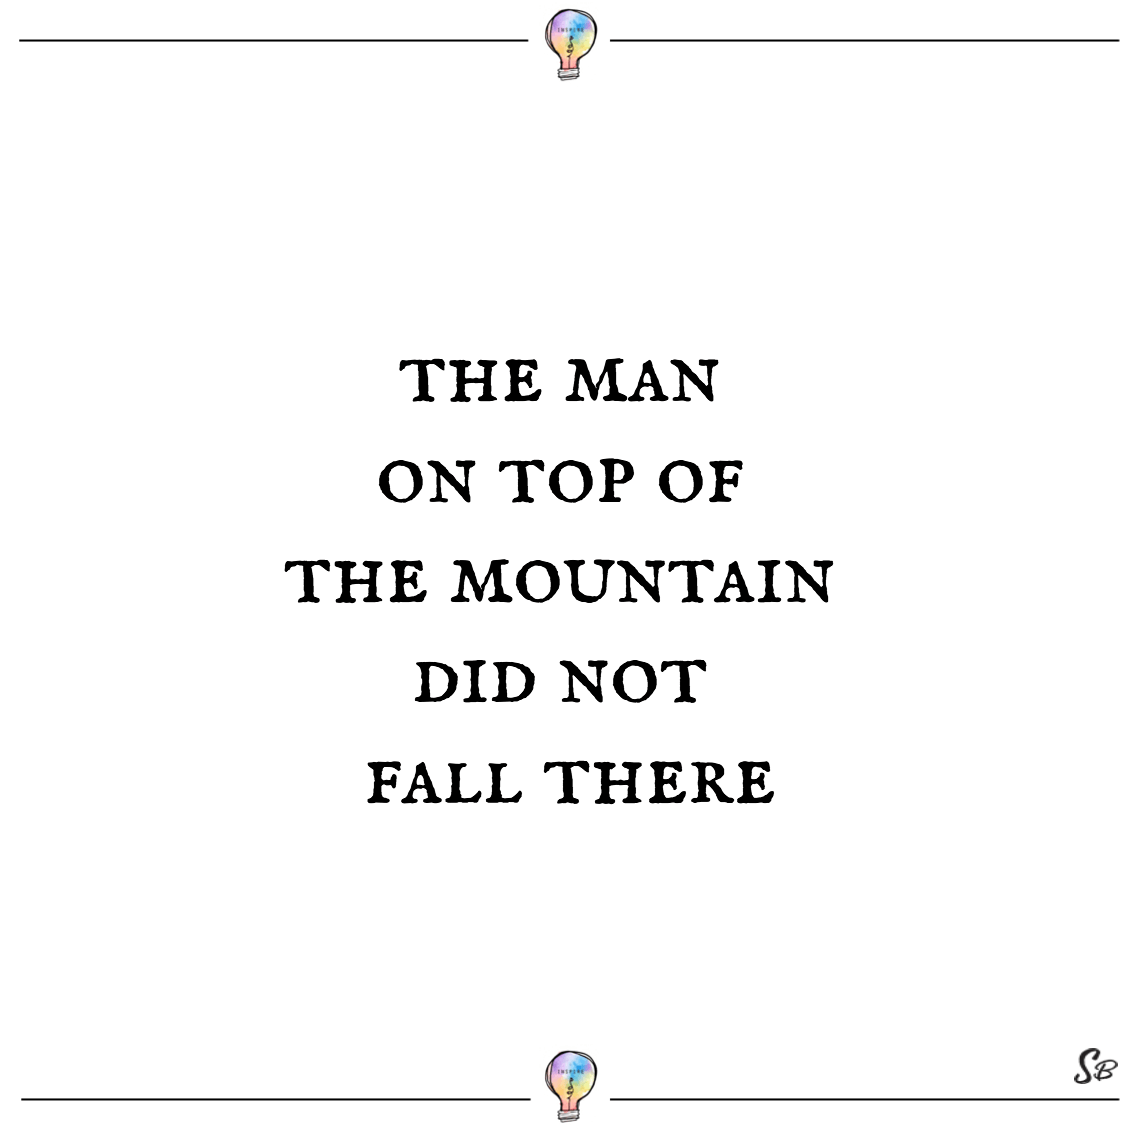 The man on top of the mountain did not fall there